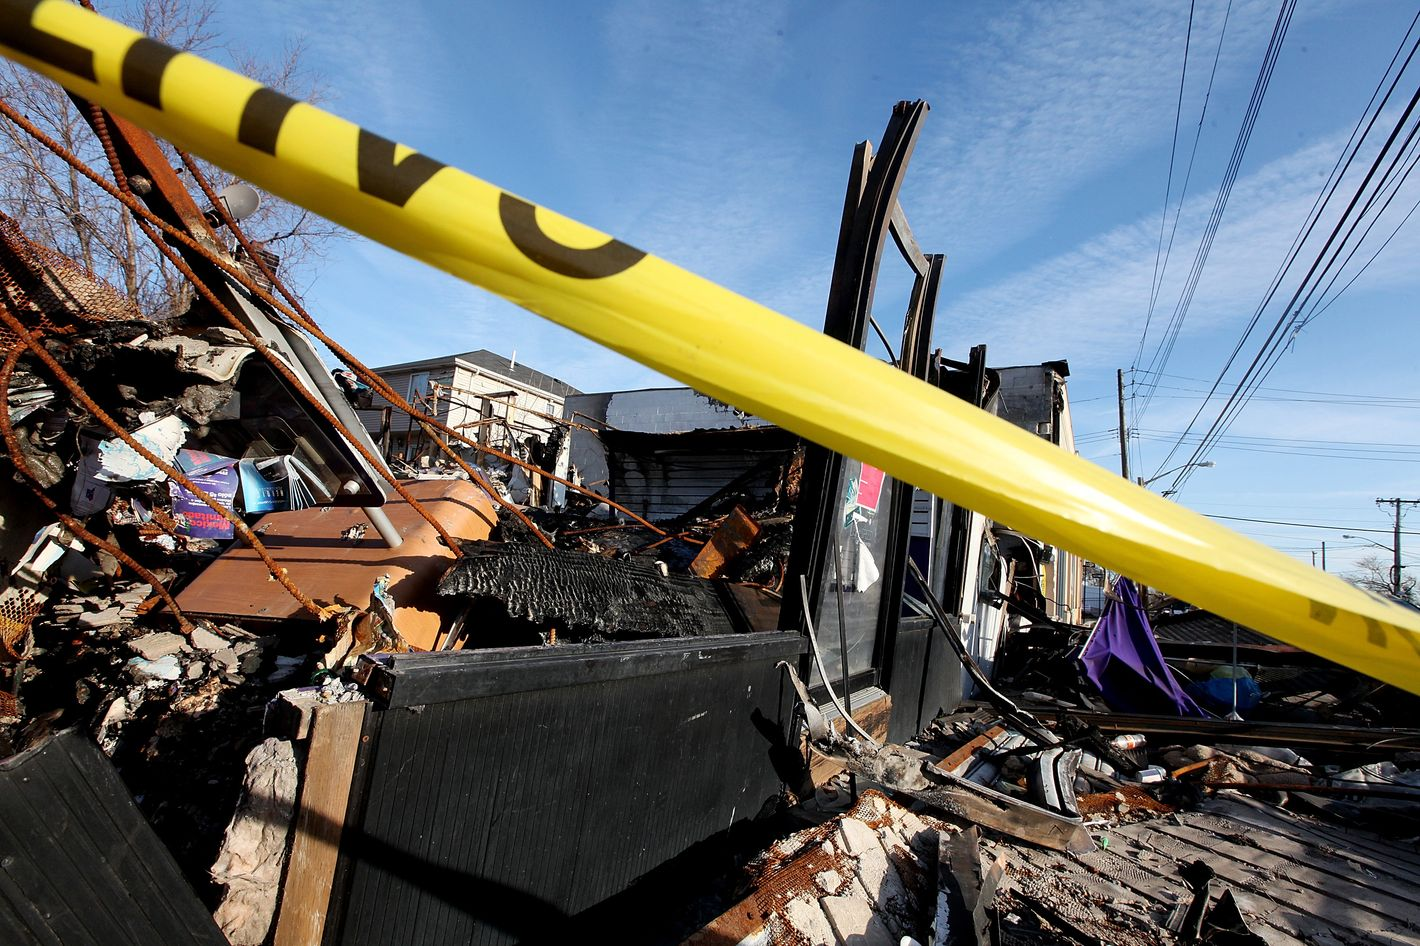 A property destroyed by fire following Superstorm Sandy remains blocked by police tape in the Midland Beach neighborhood which was heavily damaged by Sandy on December 23, 2012 in the Staten Island borough of New York City. Staten Island was hit hard by Sandy and some homes and businesses remain without power.